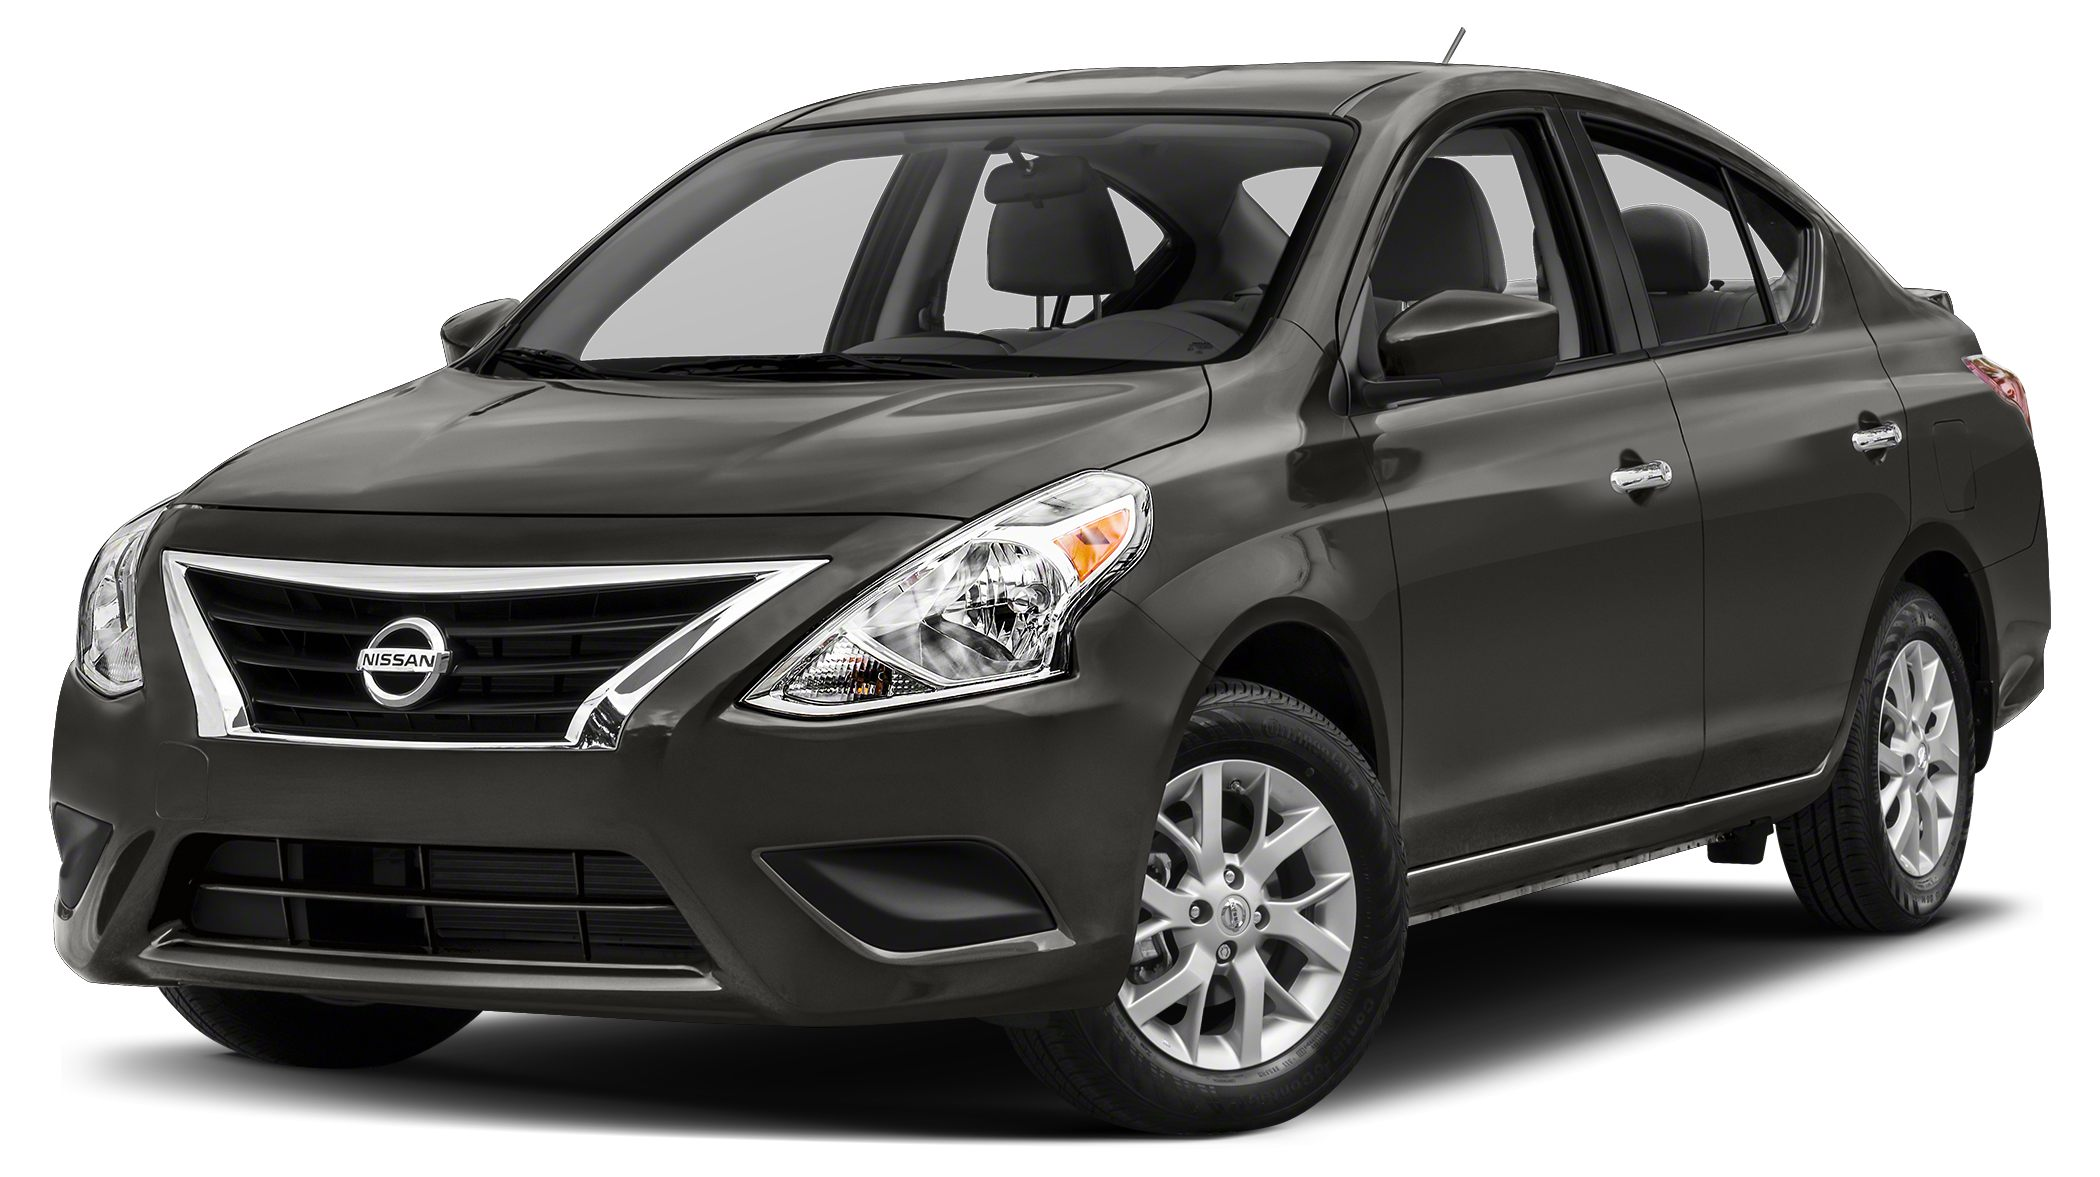 2016 Nissan Versa 16 S Nissan Certified Perfect Color Combination Switch to Valley Hi NissanW